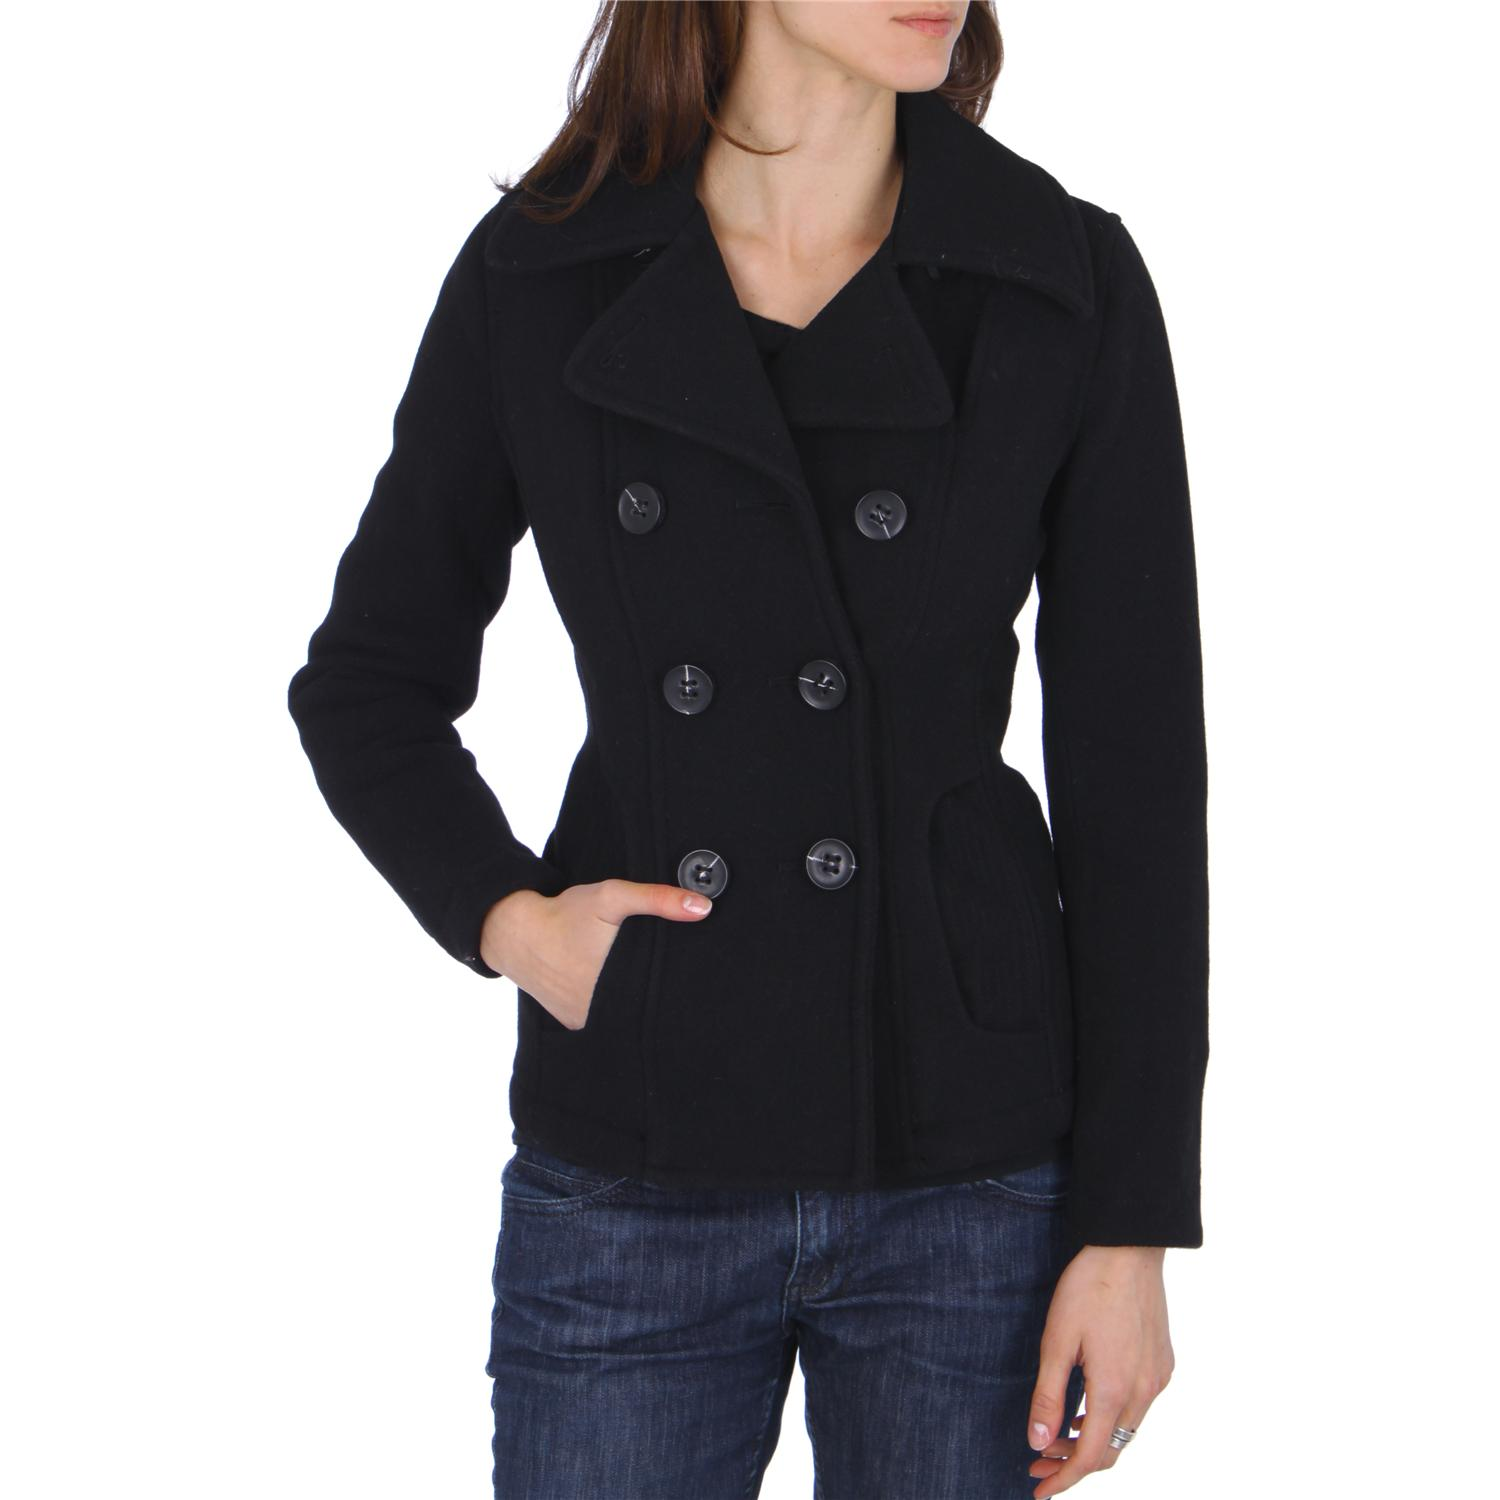 Cheap Black Pea Coats For Women